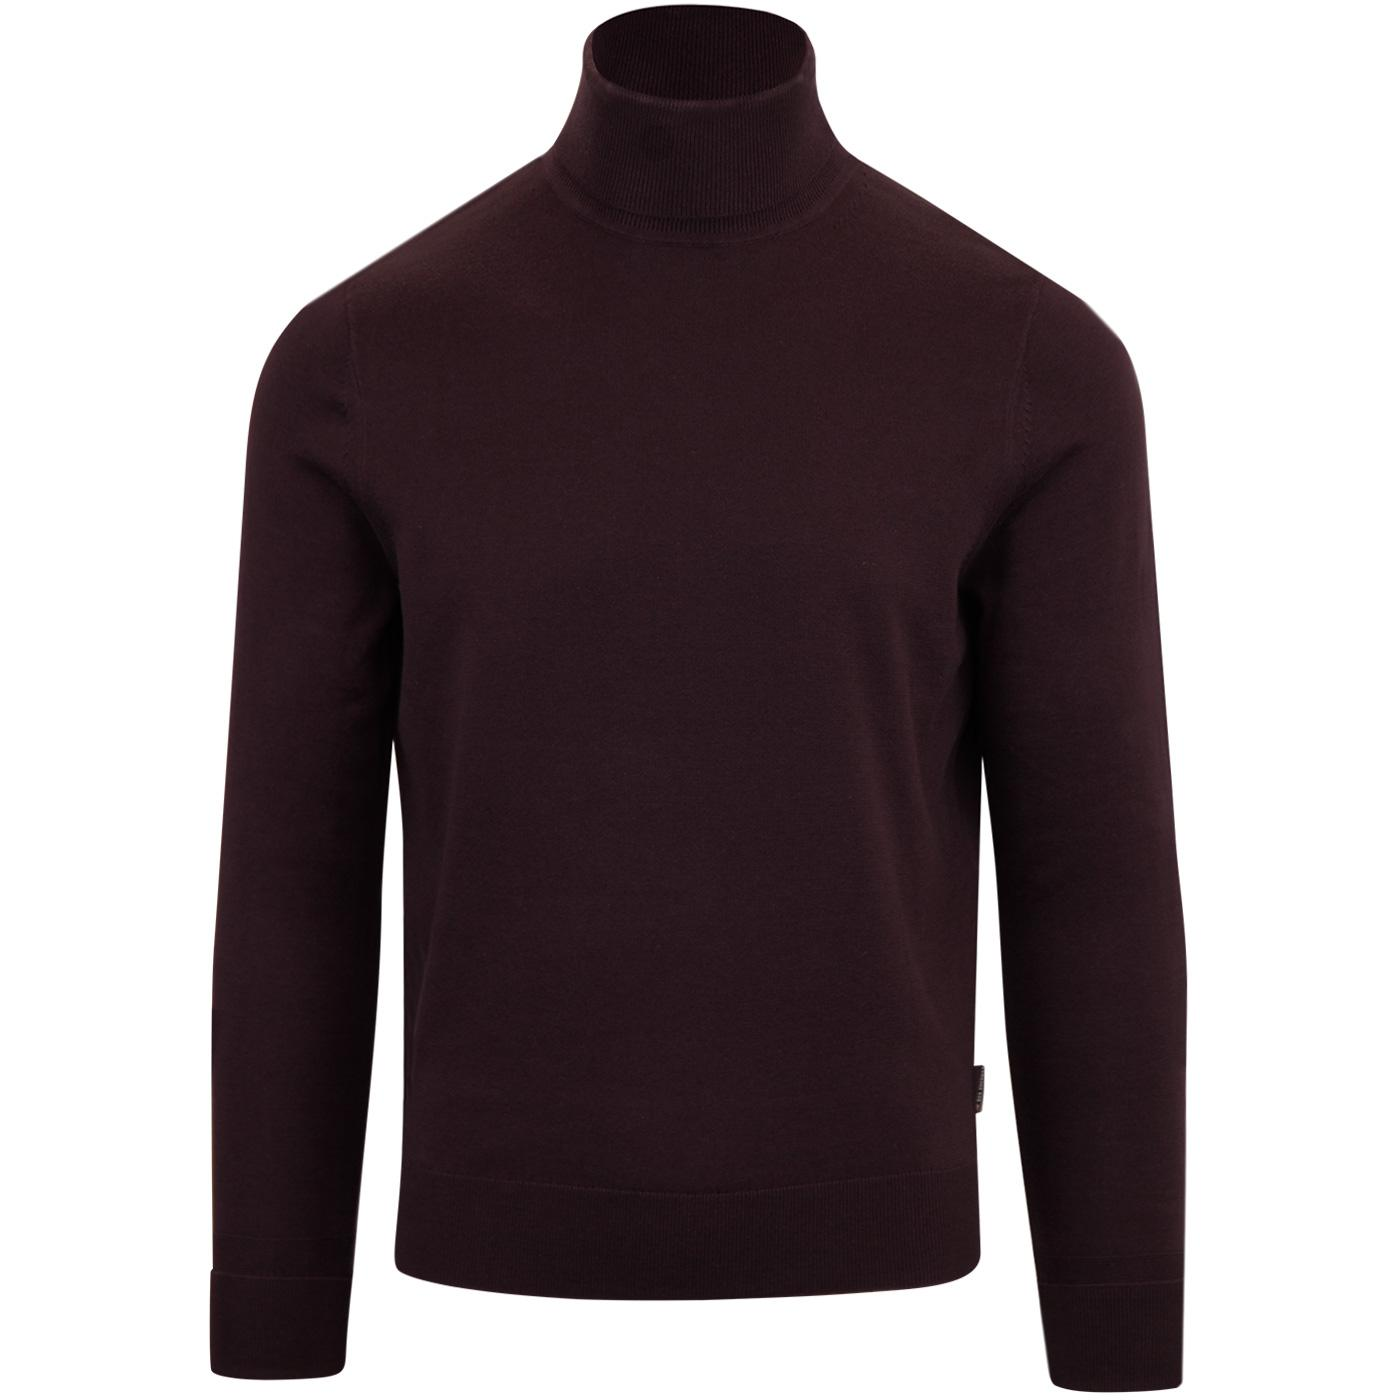 BEN SHERMAN Retro 60s Mod Roll Neck Jumper WINE